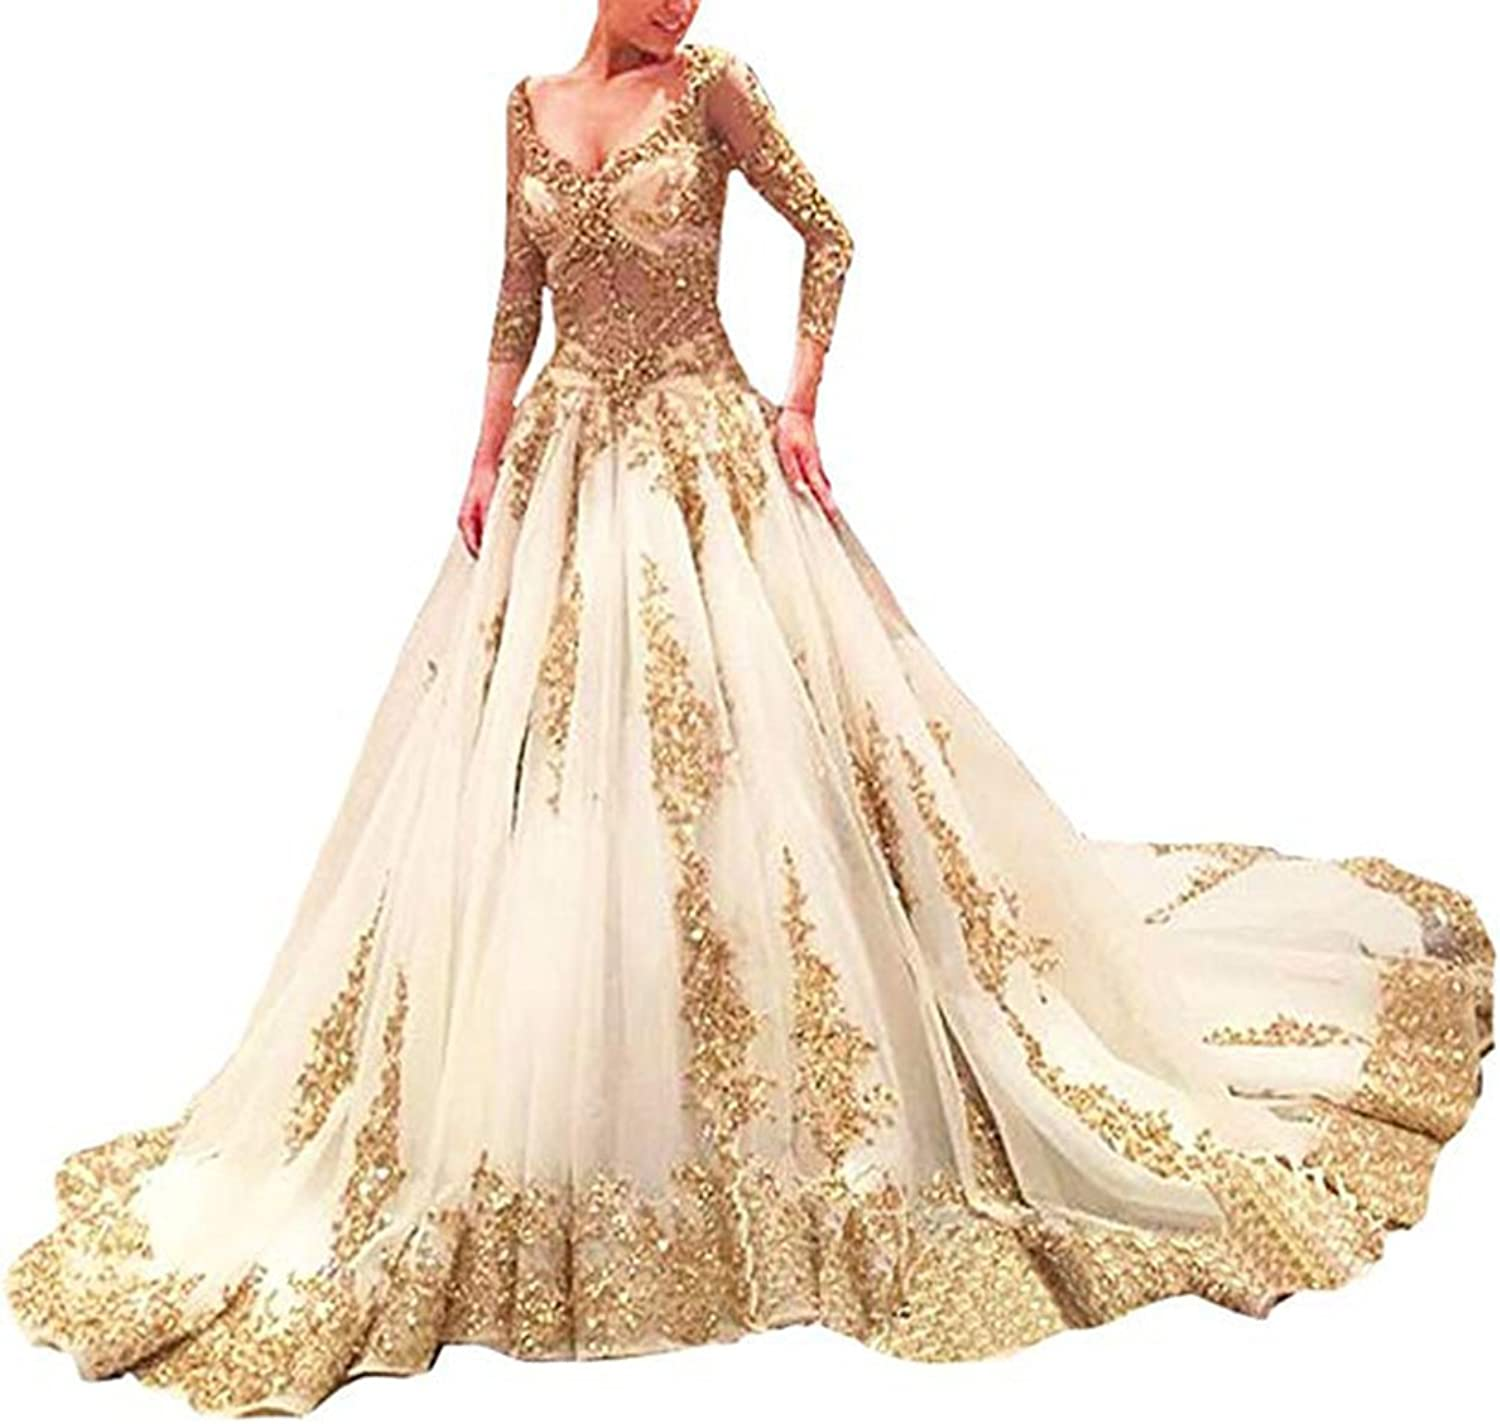 Alilith.Z Sexy V Neck See Through Long Sleeve Bridal Gowns gold Appliques Beaded Wedding Dresses for Bride Train 2018